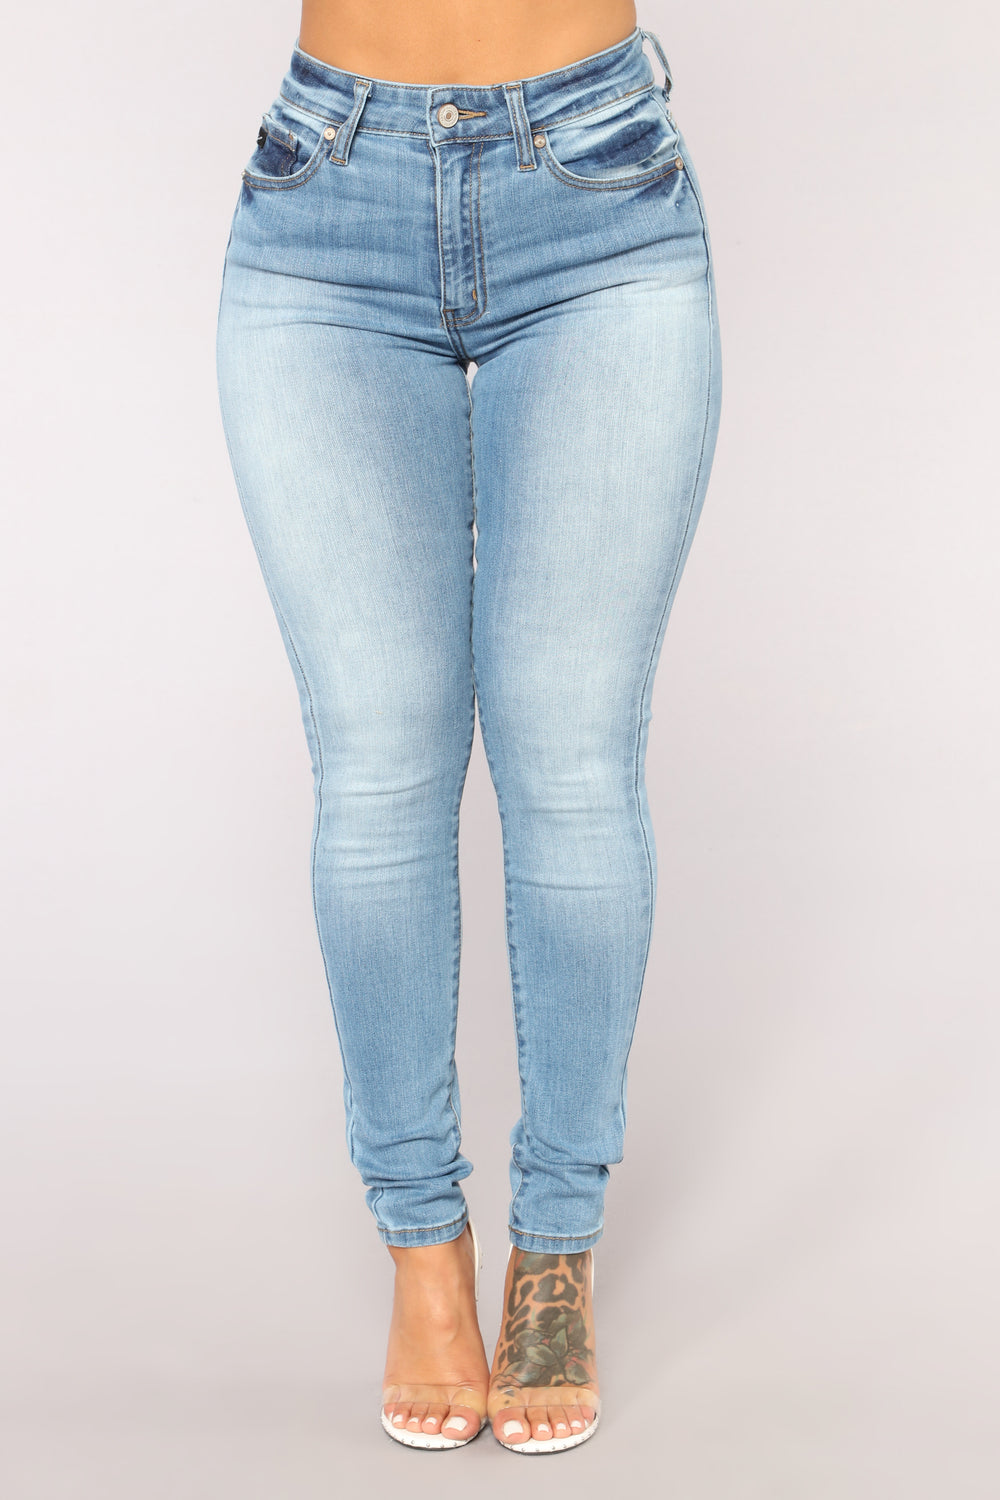 Date Night Skinny Jeans - Light Blue Wash